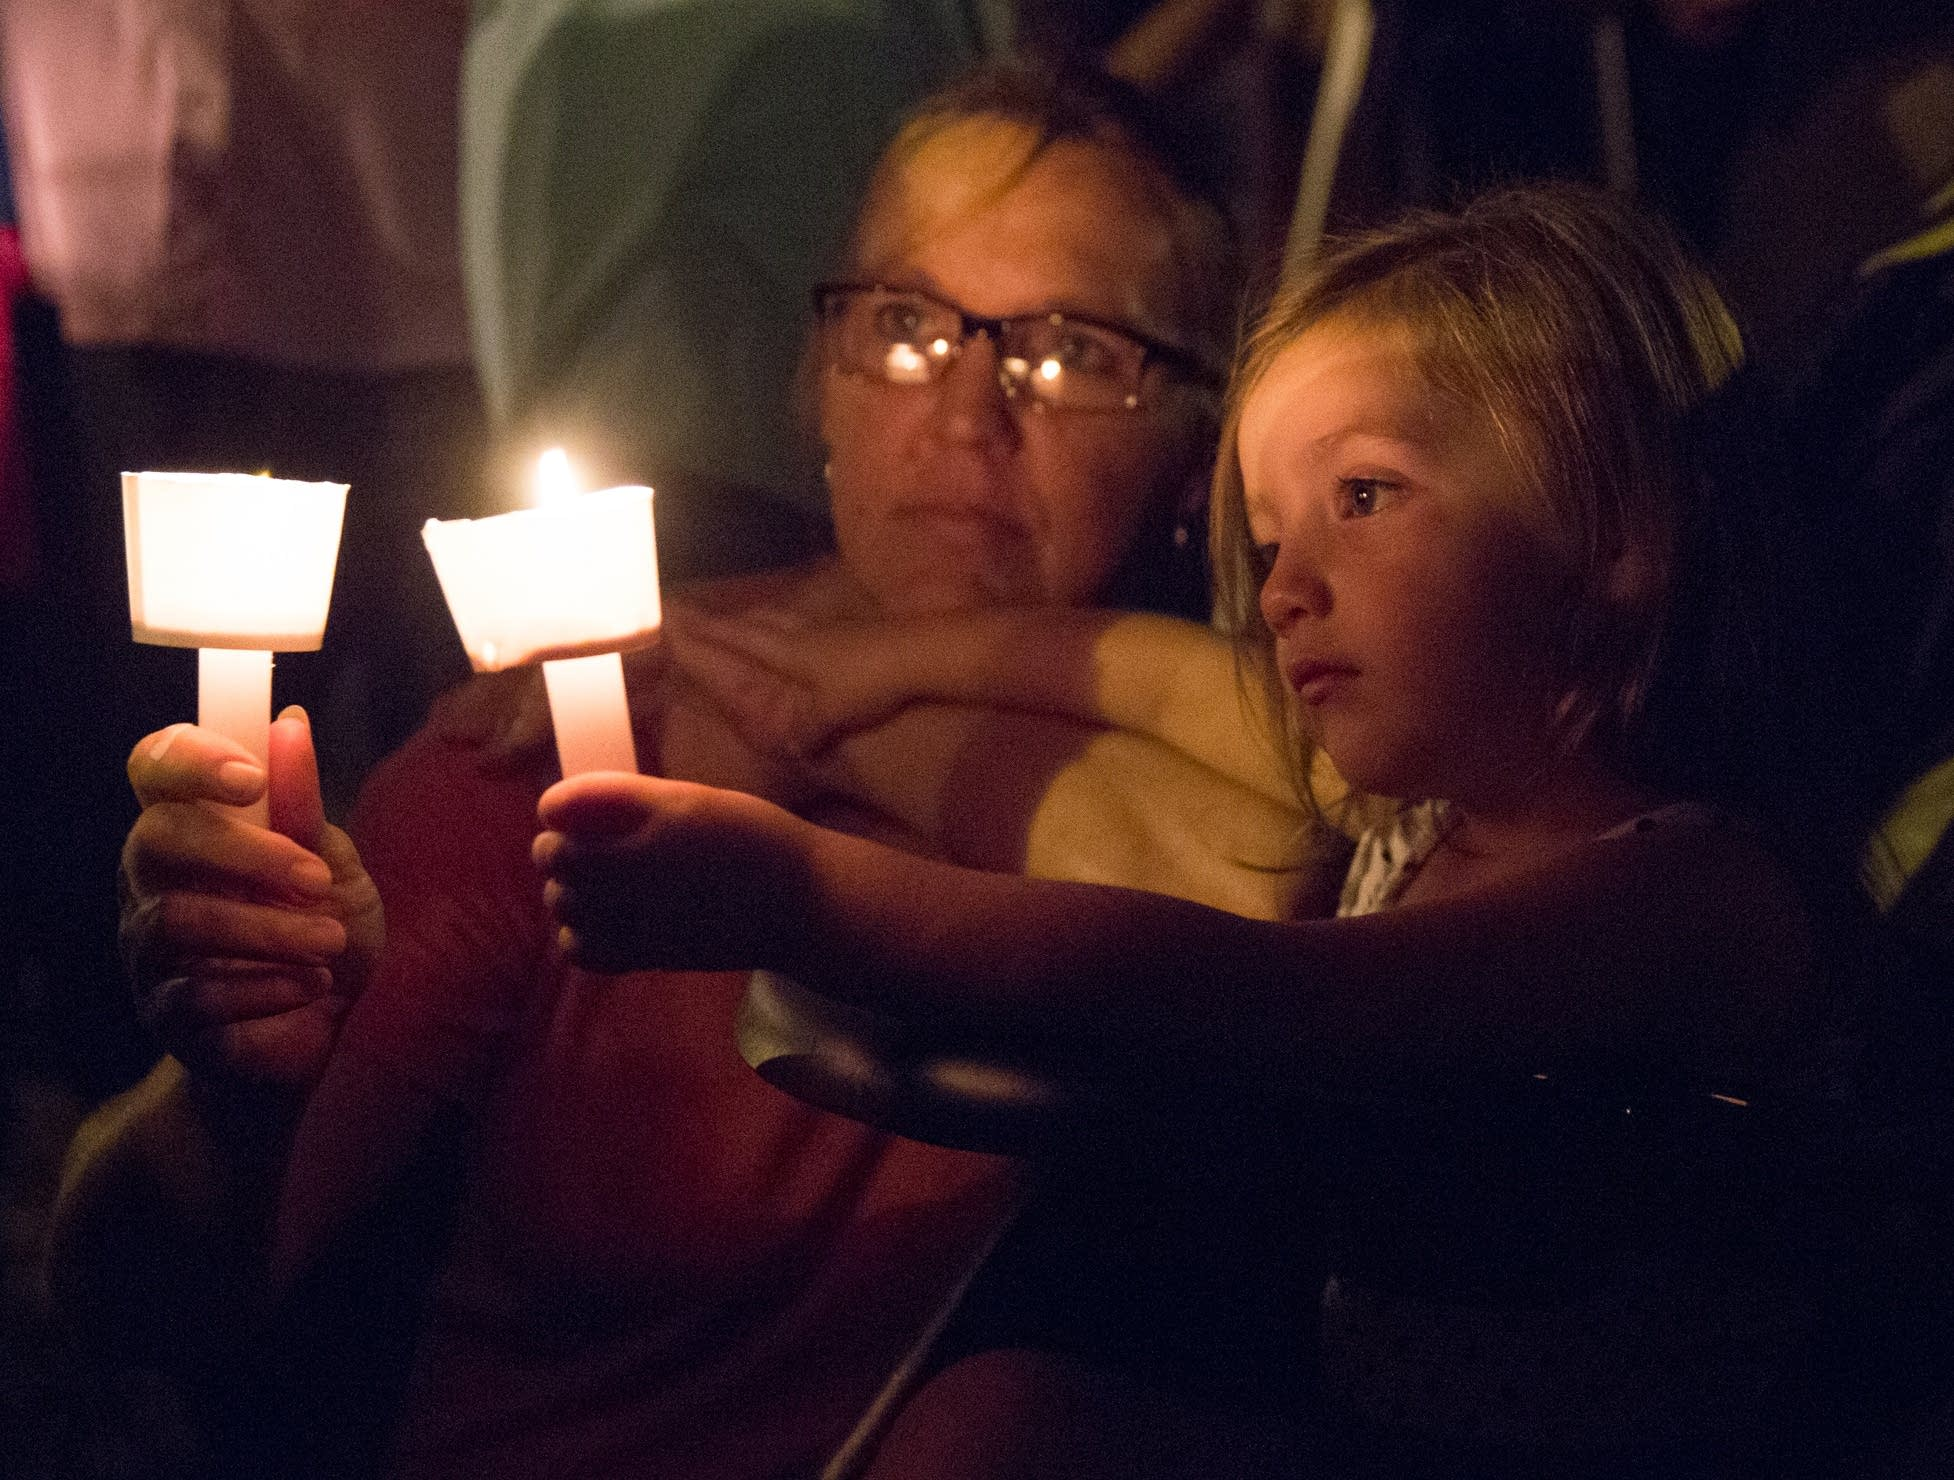 A candlelight vigil is observed on Sunday.